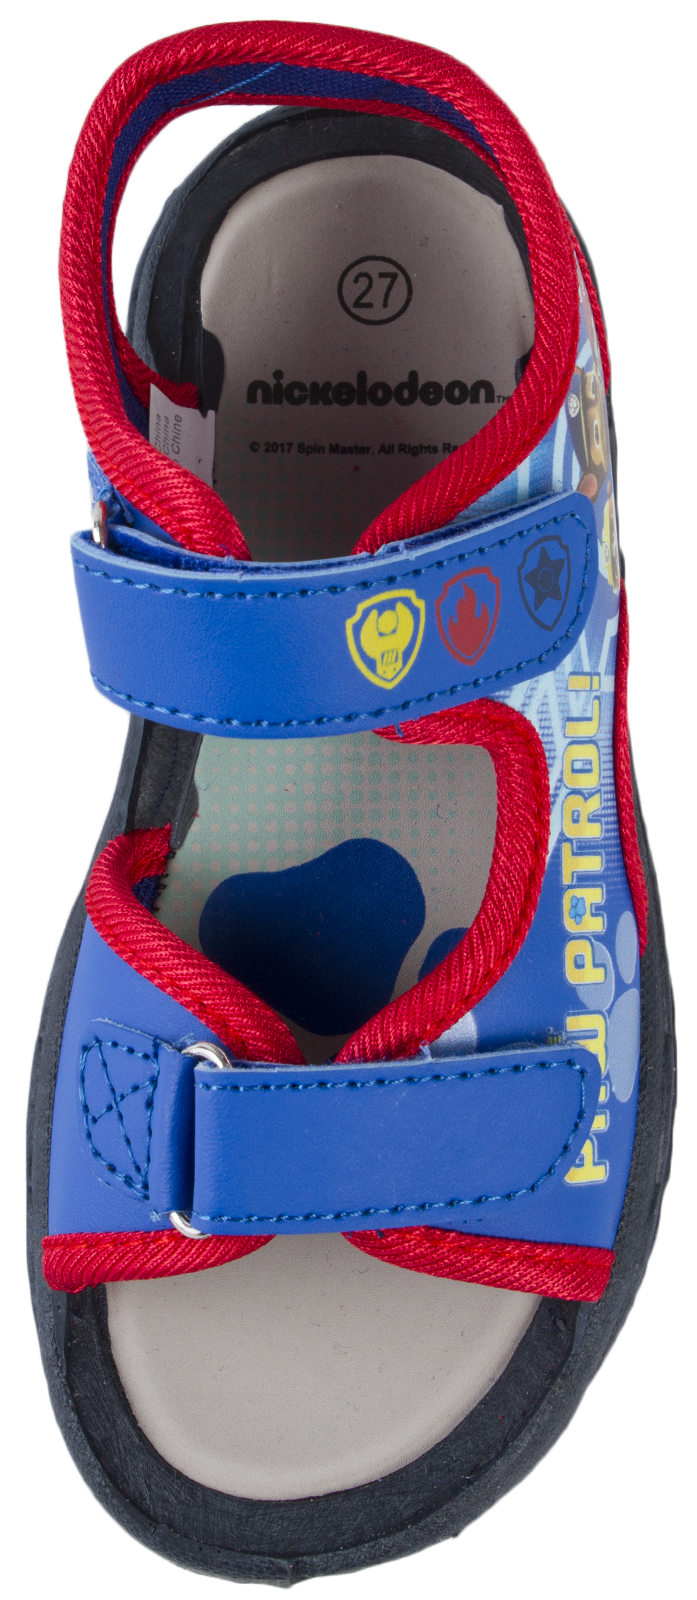 Paw Patrol Sports Sandals Fully Adjustable Straps Flat Shoes Boys Kids Size